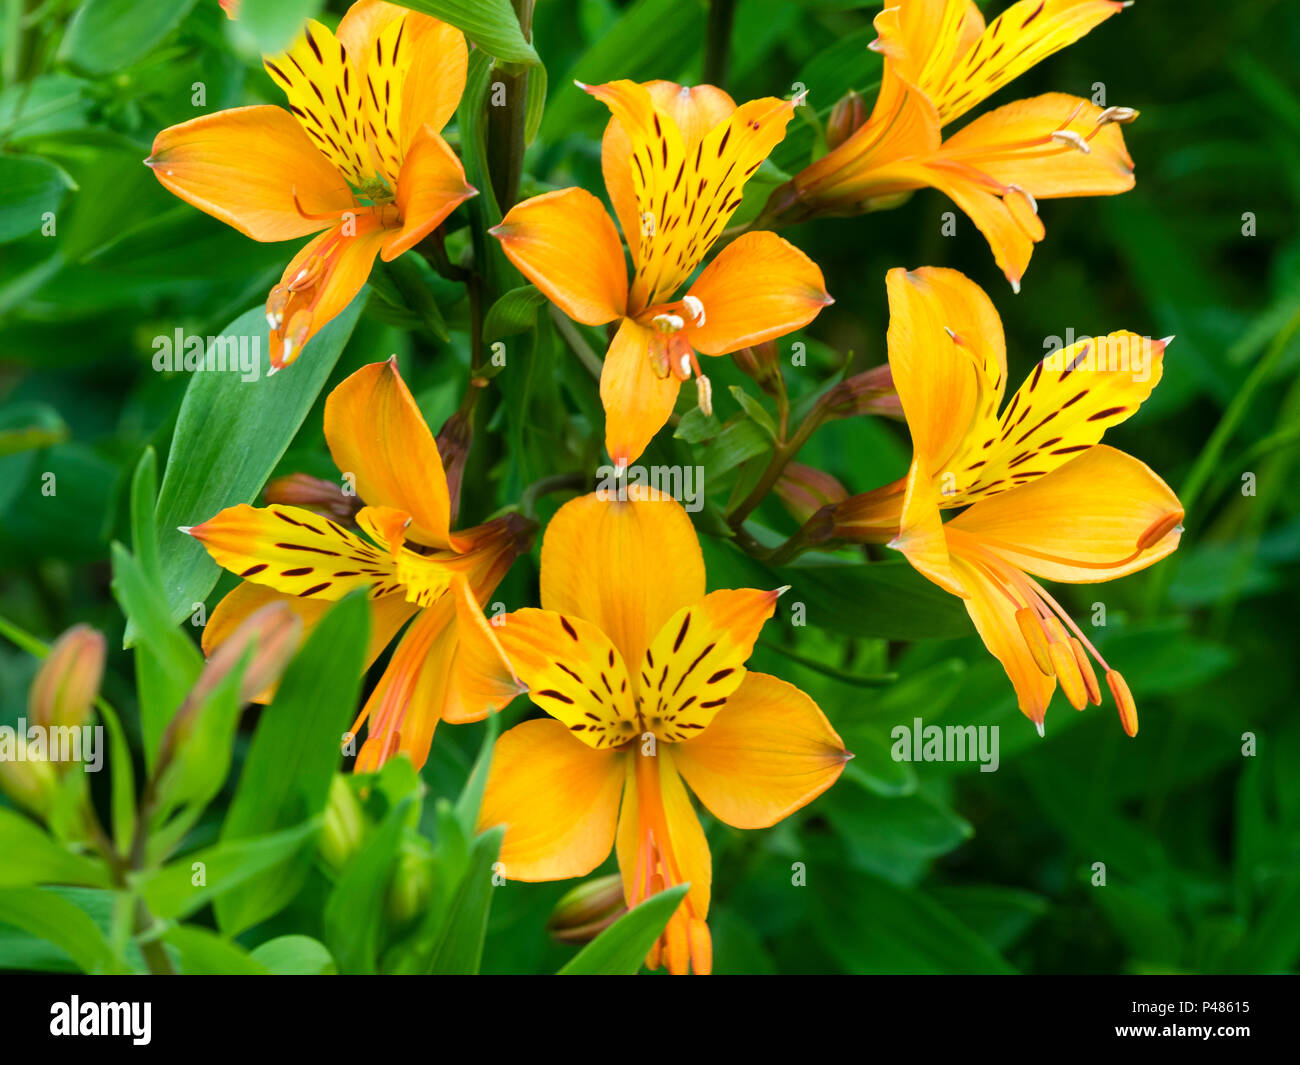 Orange Flowered Form Of The Peruvian Lily Alstroemeria Aurea A Aurantiaca Blooming In Early Summer Stock Photo Alamy